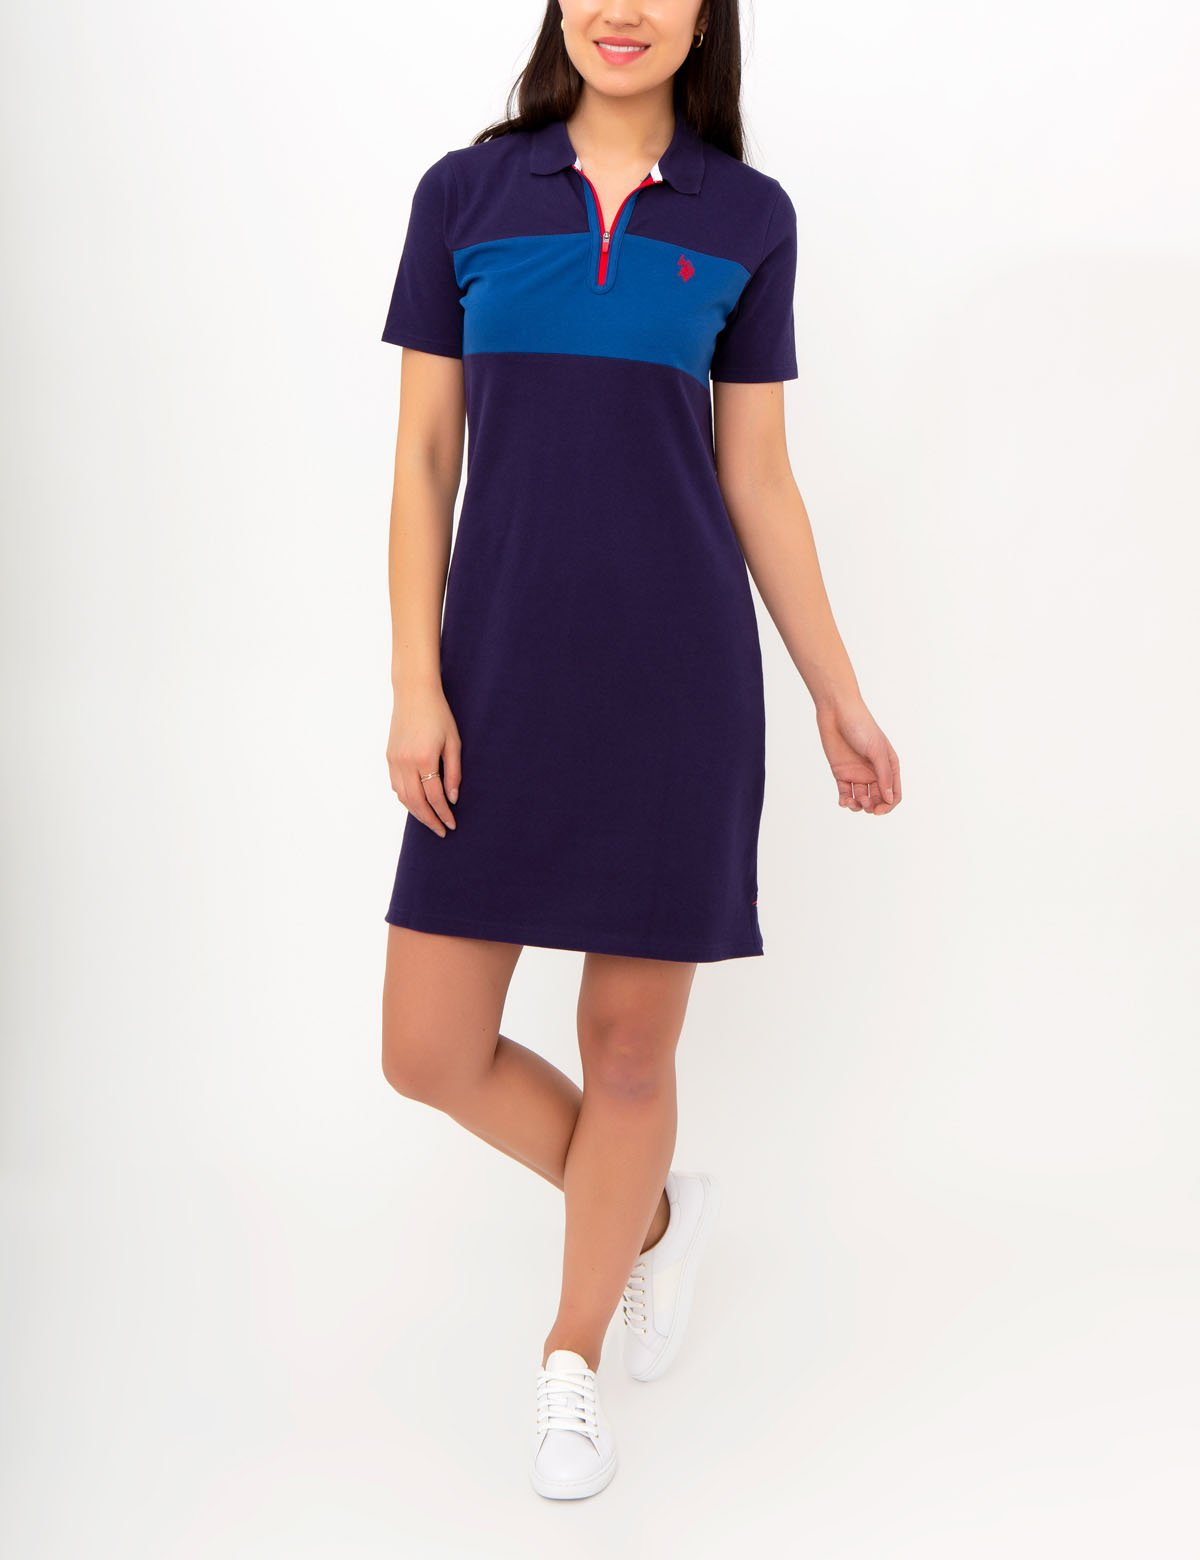 POLO DRESS WITH ZIPPER